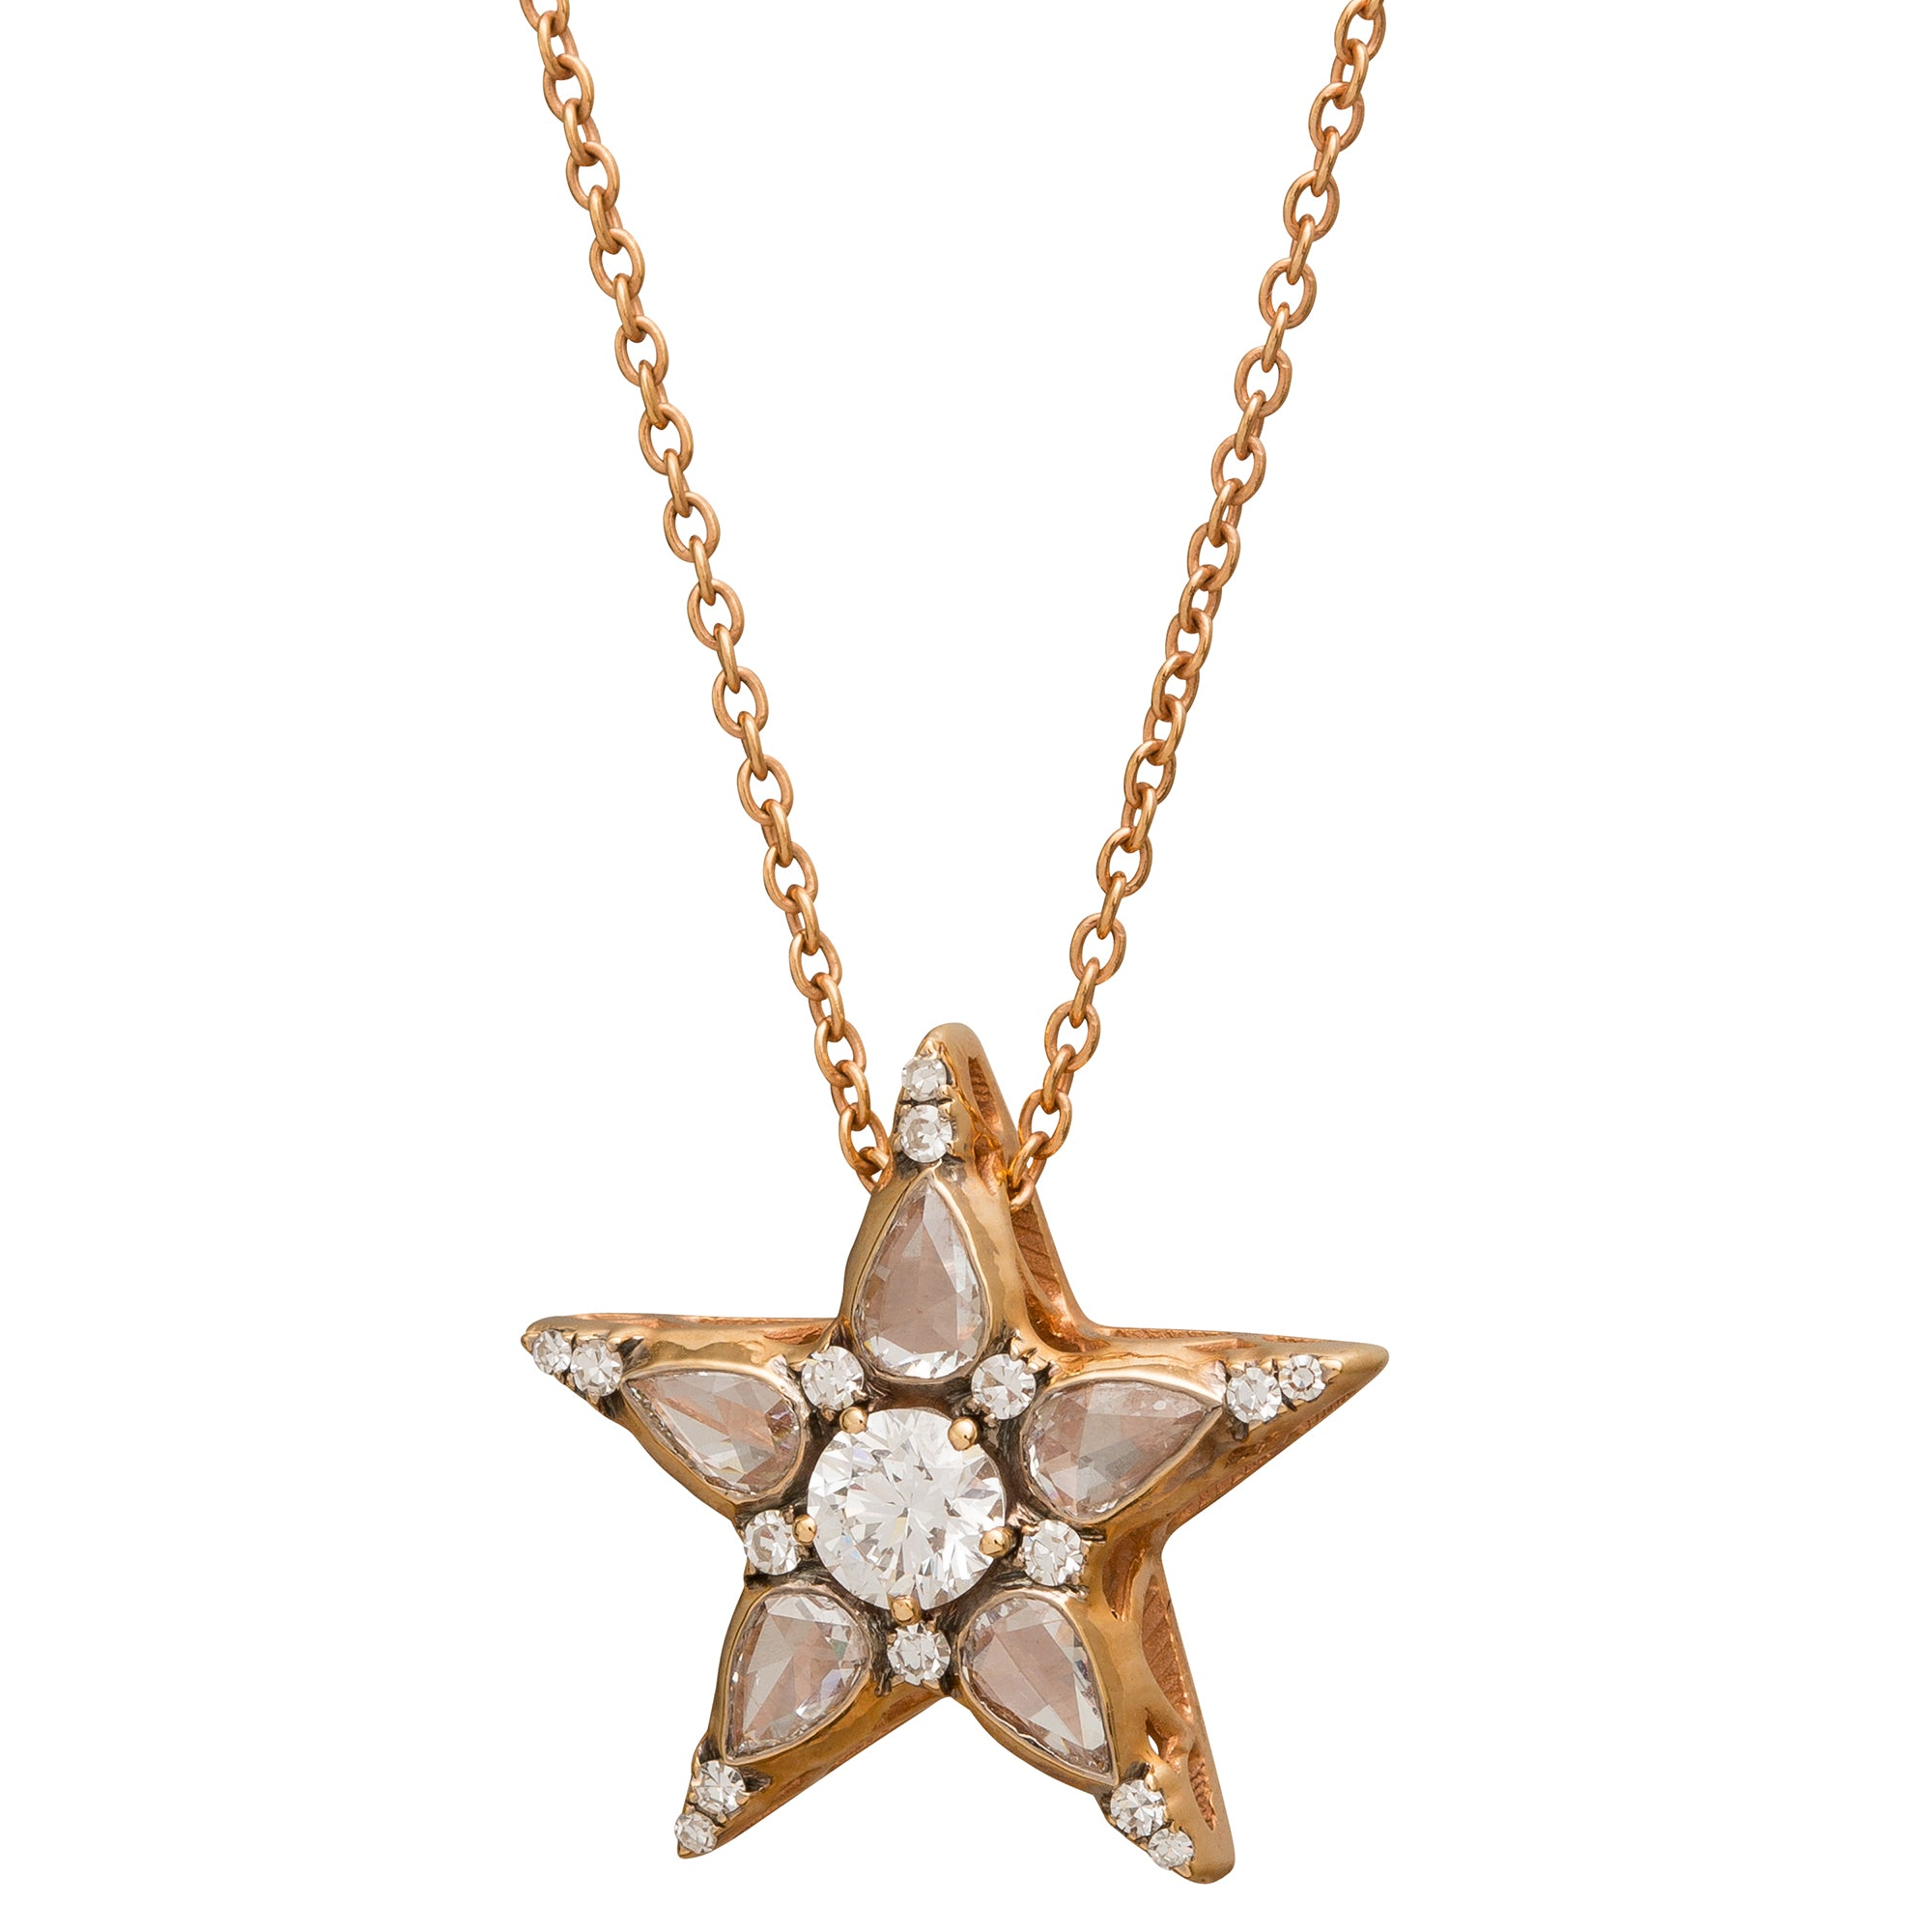 Istanbul Star Pendant Necklace by Selim Mouzannar for Broken English Jewelry